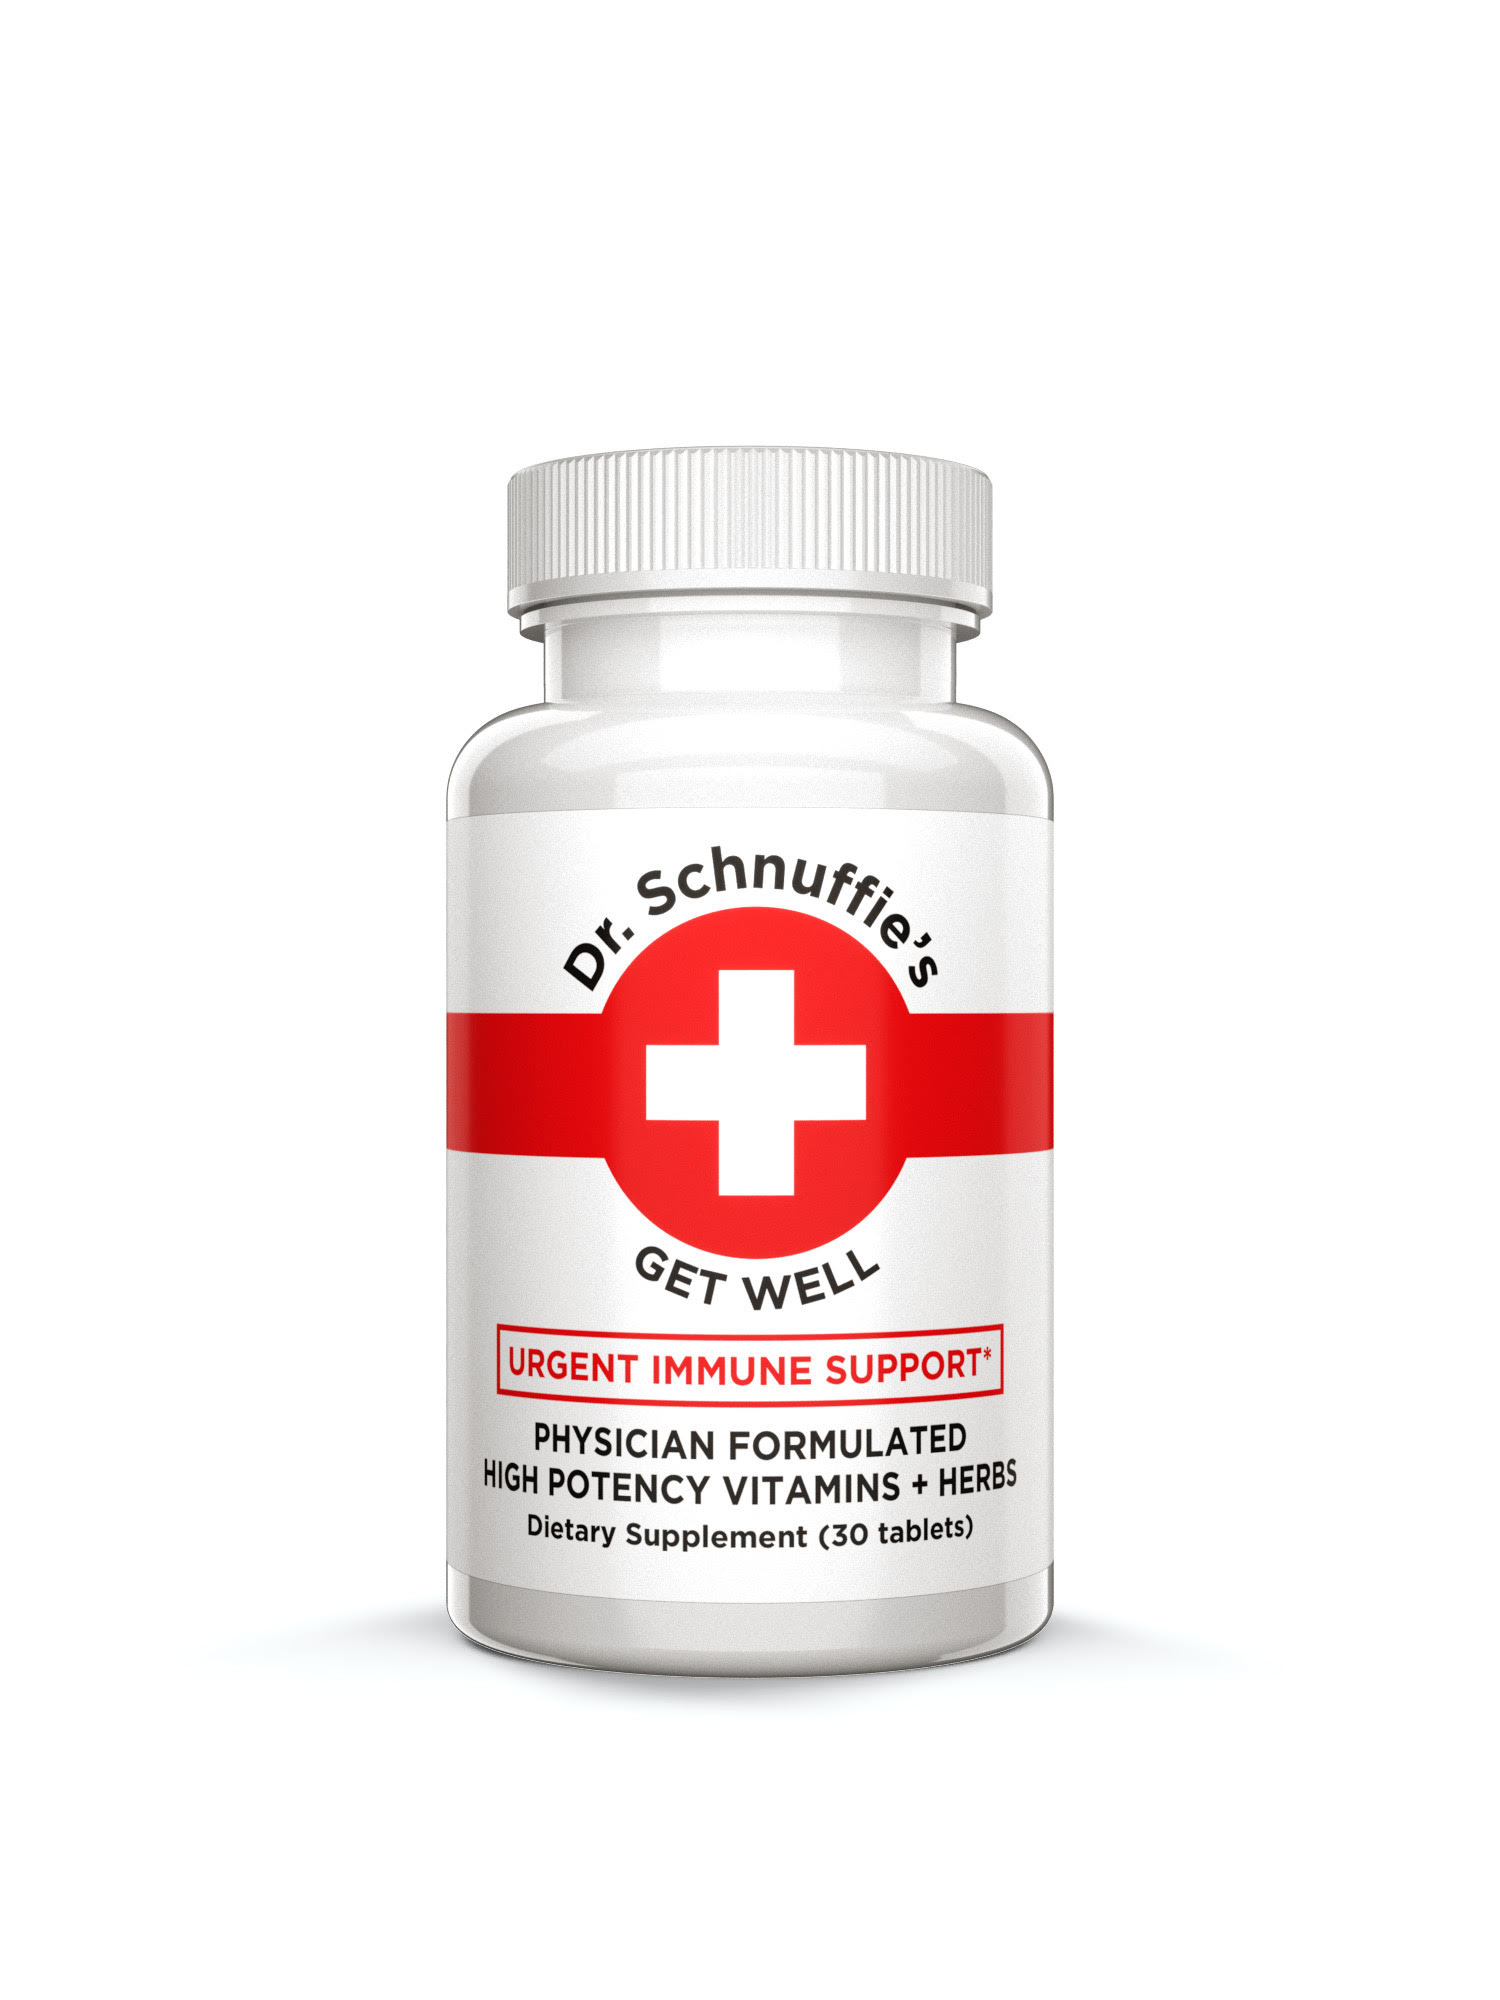 dr+schnuffies+get+well+vitamin+supplement+natural+high+dose+american+made+premium.jpg